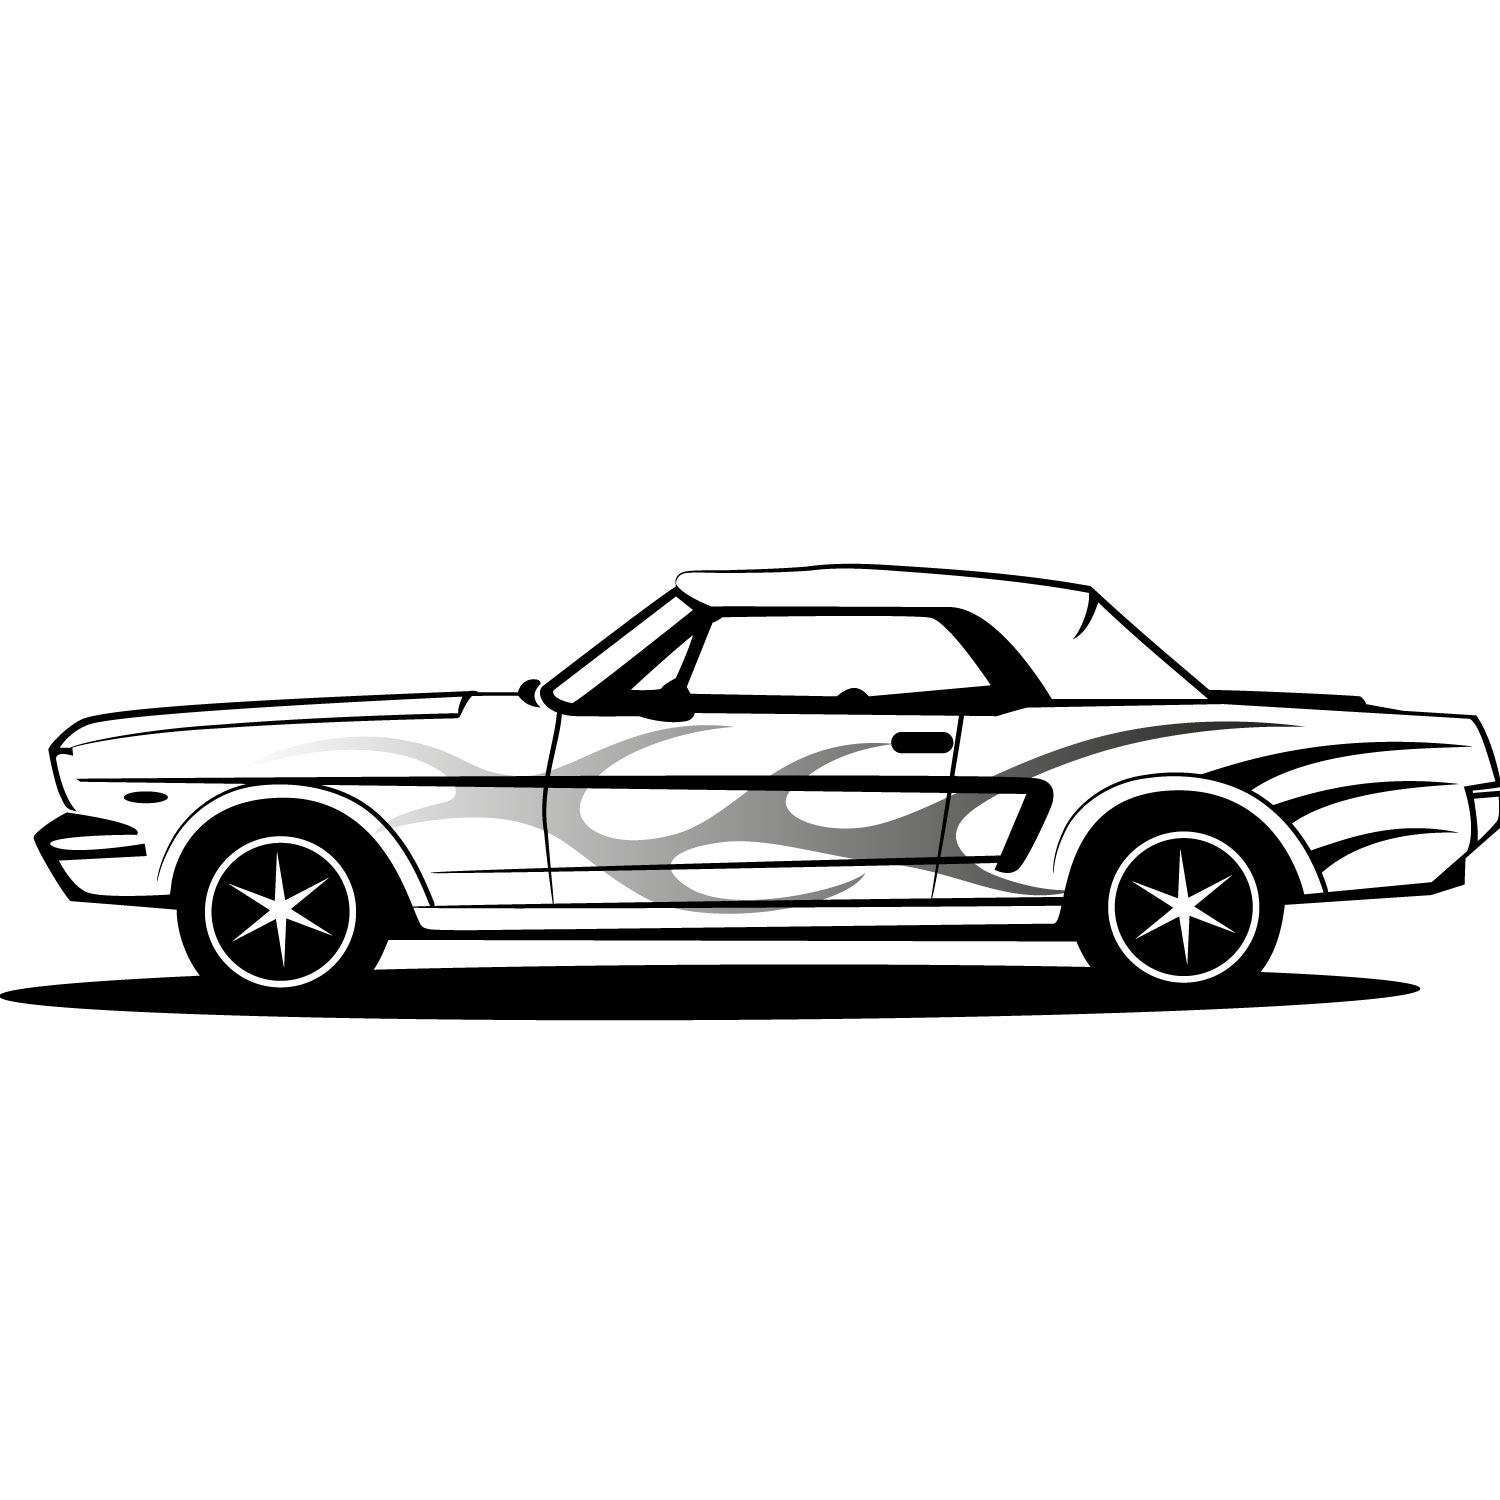 Black and white fast mastang car clipart jpg stock Mustang Car Clipart | Free download best Mustang Car Clipart on ... jpg stock